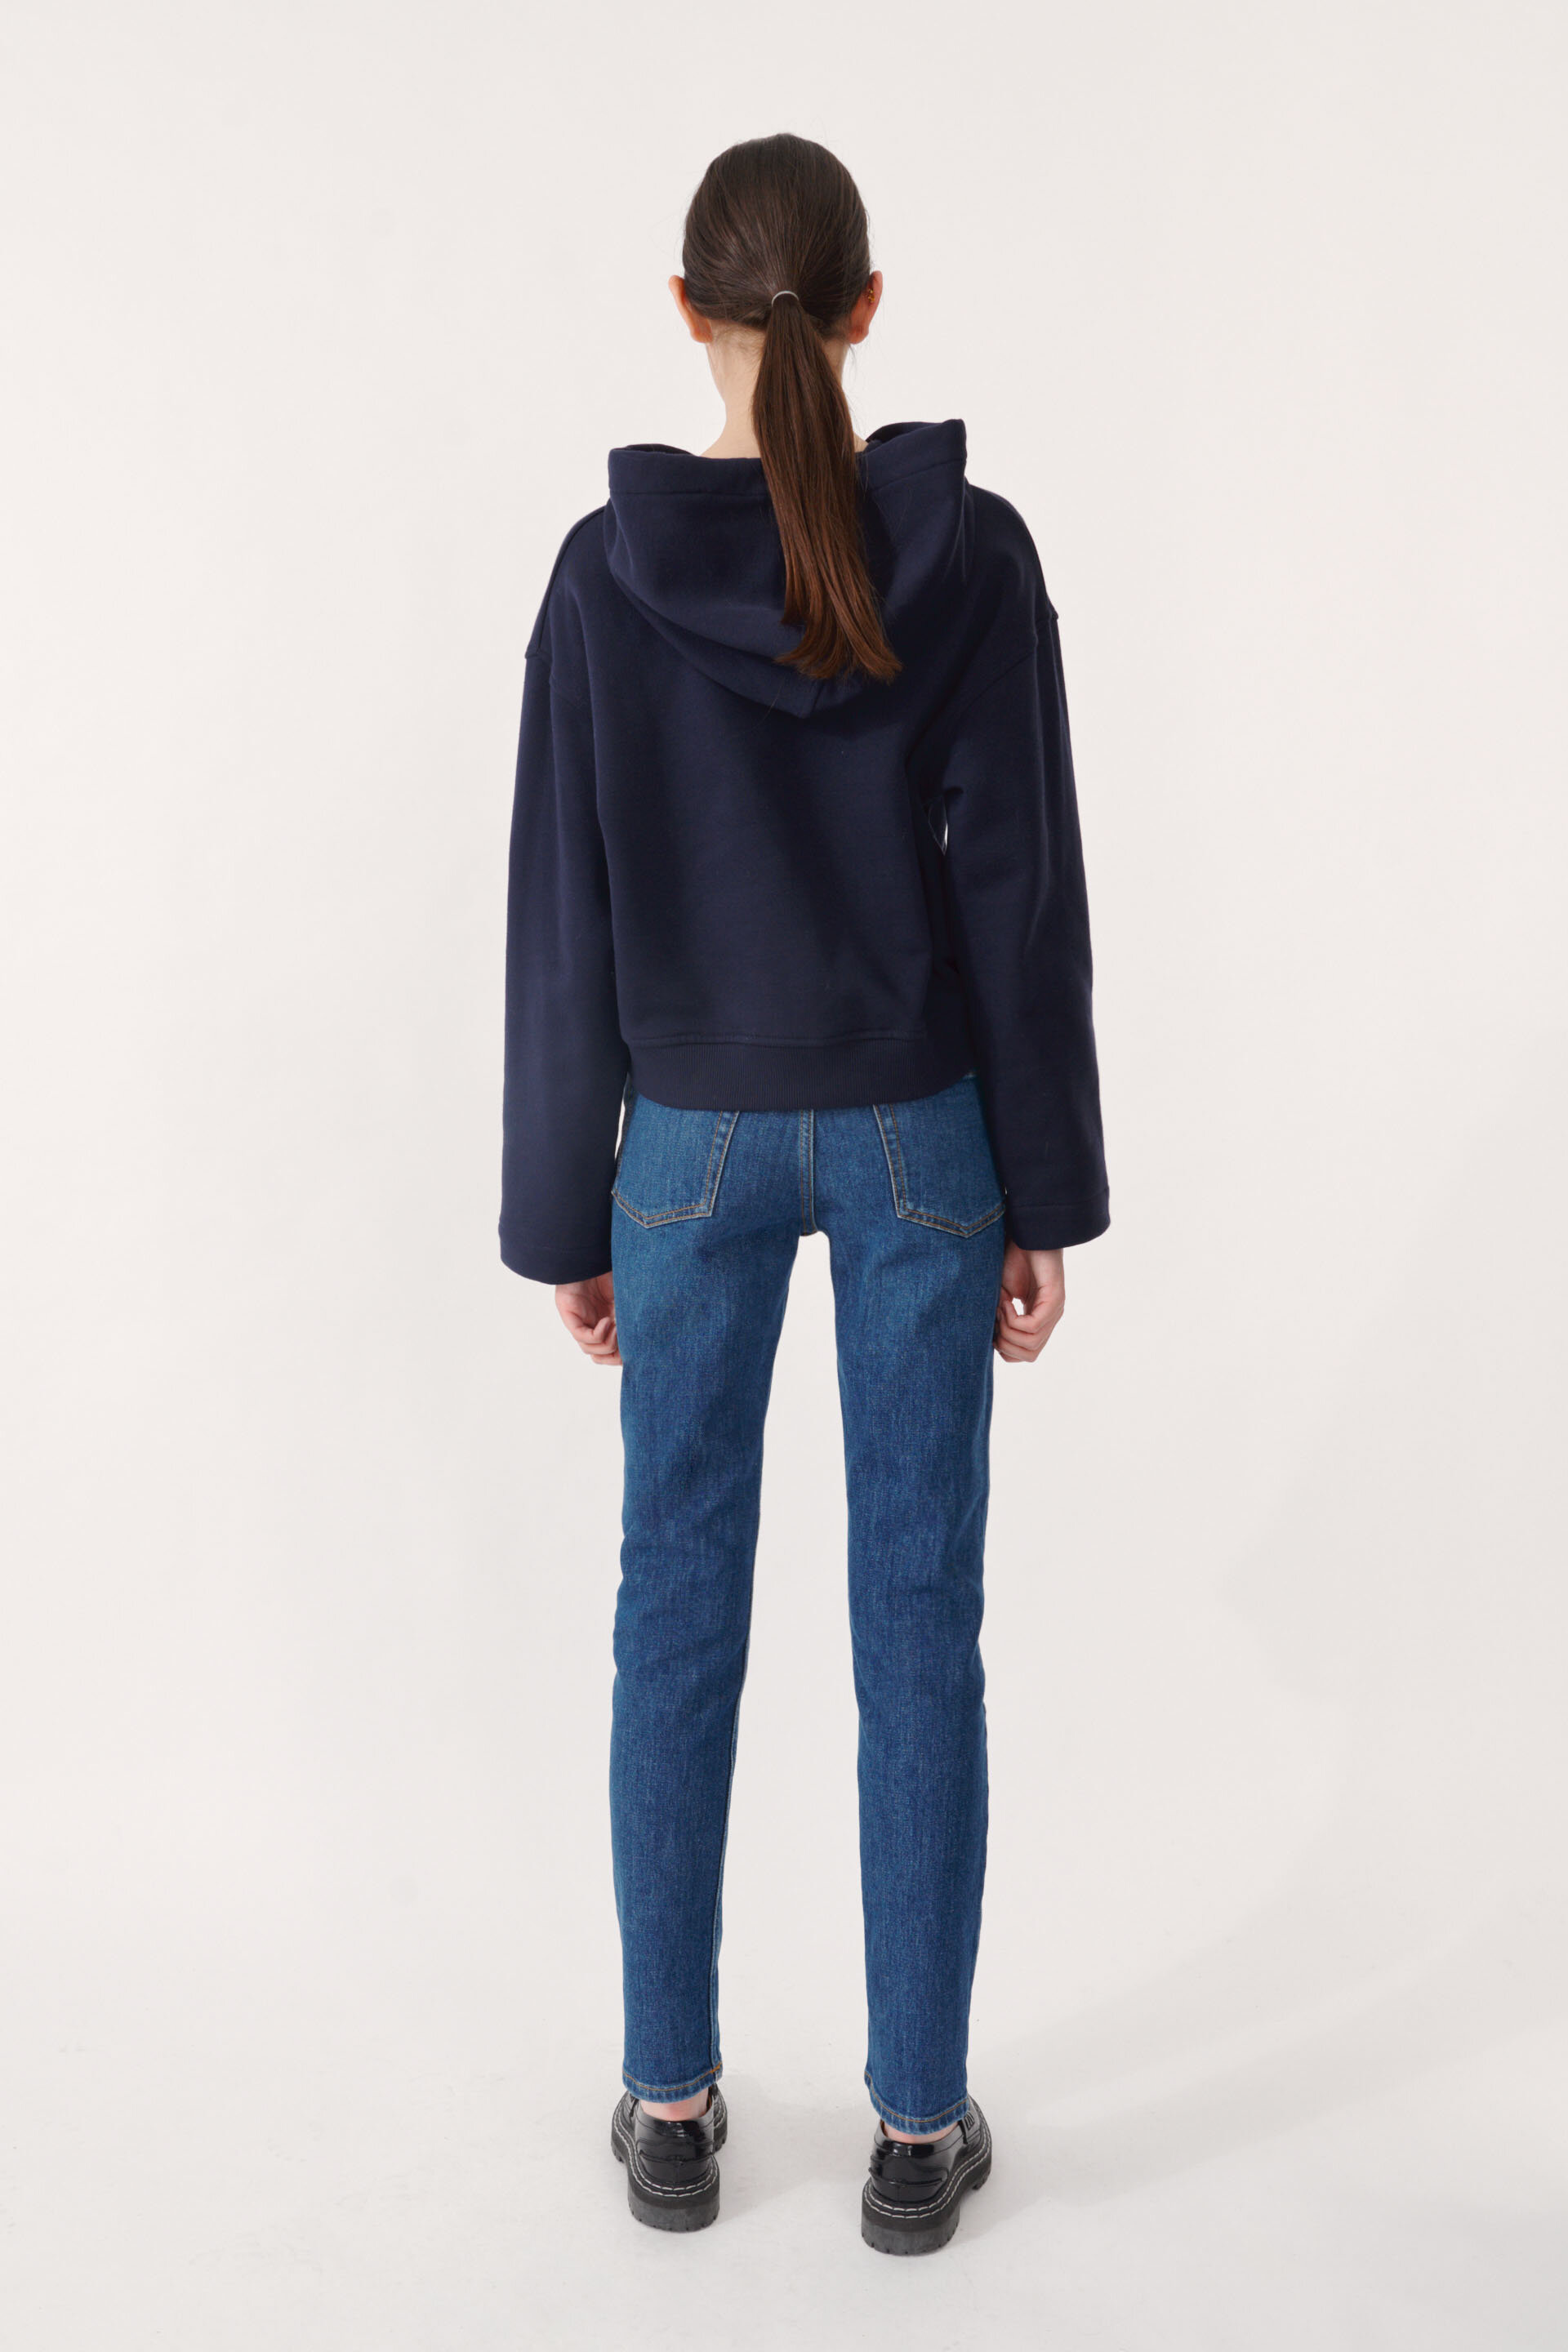 Jeroma Bp Sweater Night Sky A thick hooded sweatshirt with a loose fit, cropped silhouette, and logo embossed at the chest - detail image